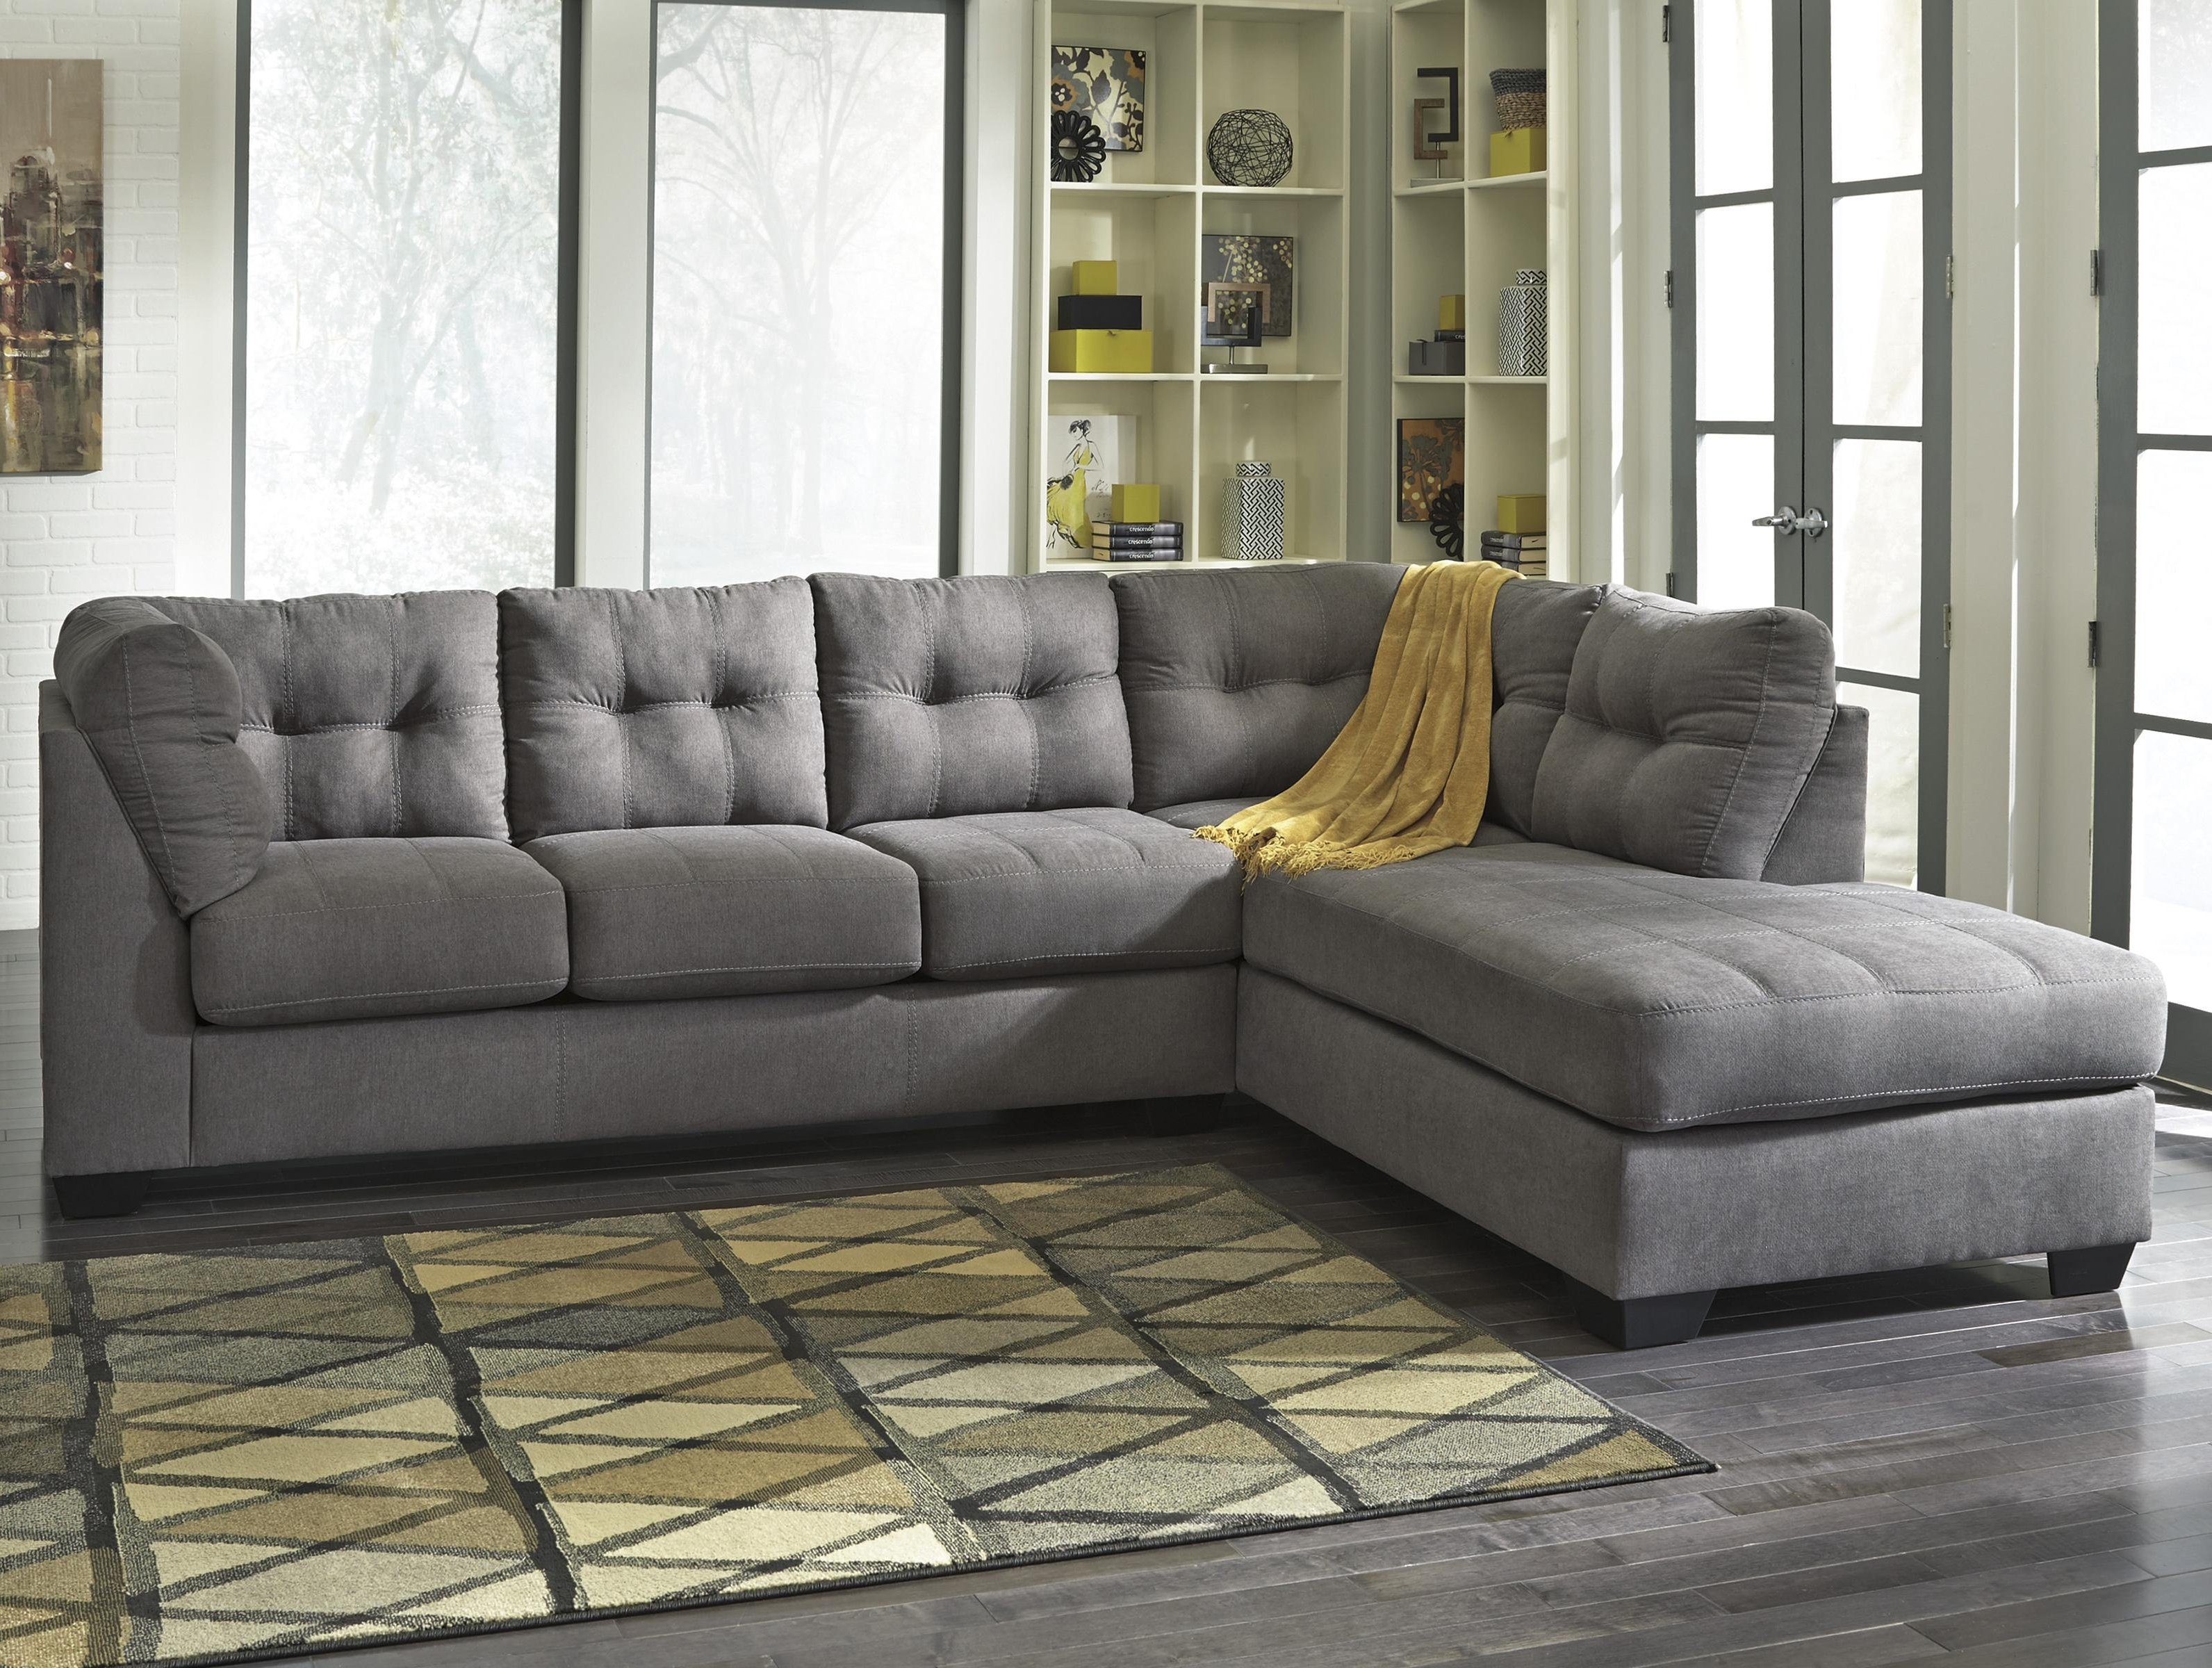 Benchcraft Maier – Charcoal 2 Piece Sectional W/ Sleeper Sofa In Best And Newest Ashley Furniture Chaise Sofas (View 7 of 15)